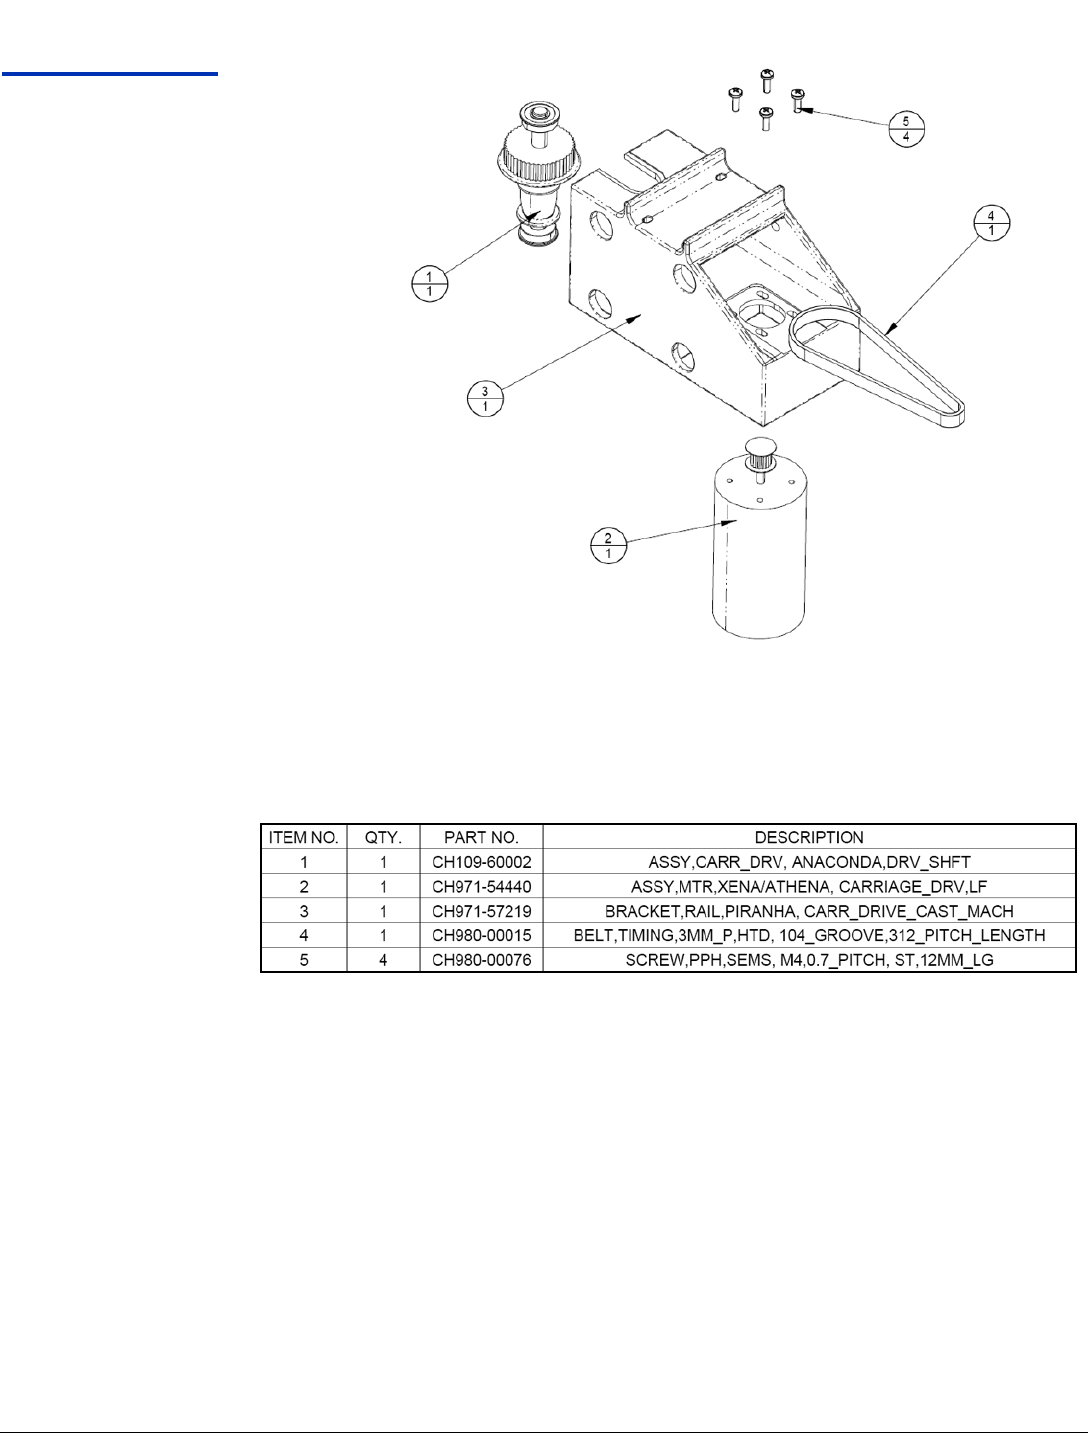 Cq114 67185 Hp New Light Blocking Shield Used With The Pair Of Wiring Diagram 3 5 Mm Headphone Jack Gecko G540 Part No 90035 Rev B Scitex Fb500 Fb700 Service Manual Page 48 510